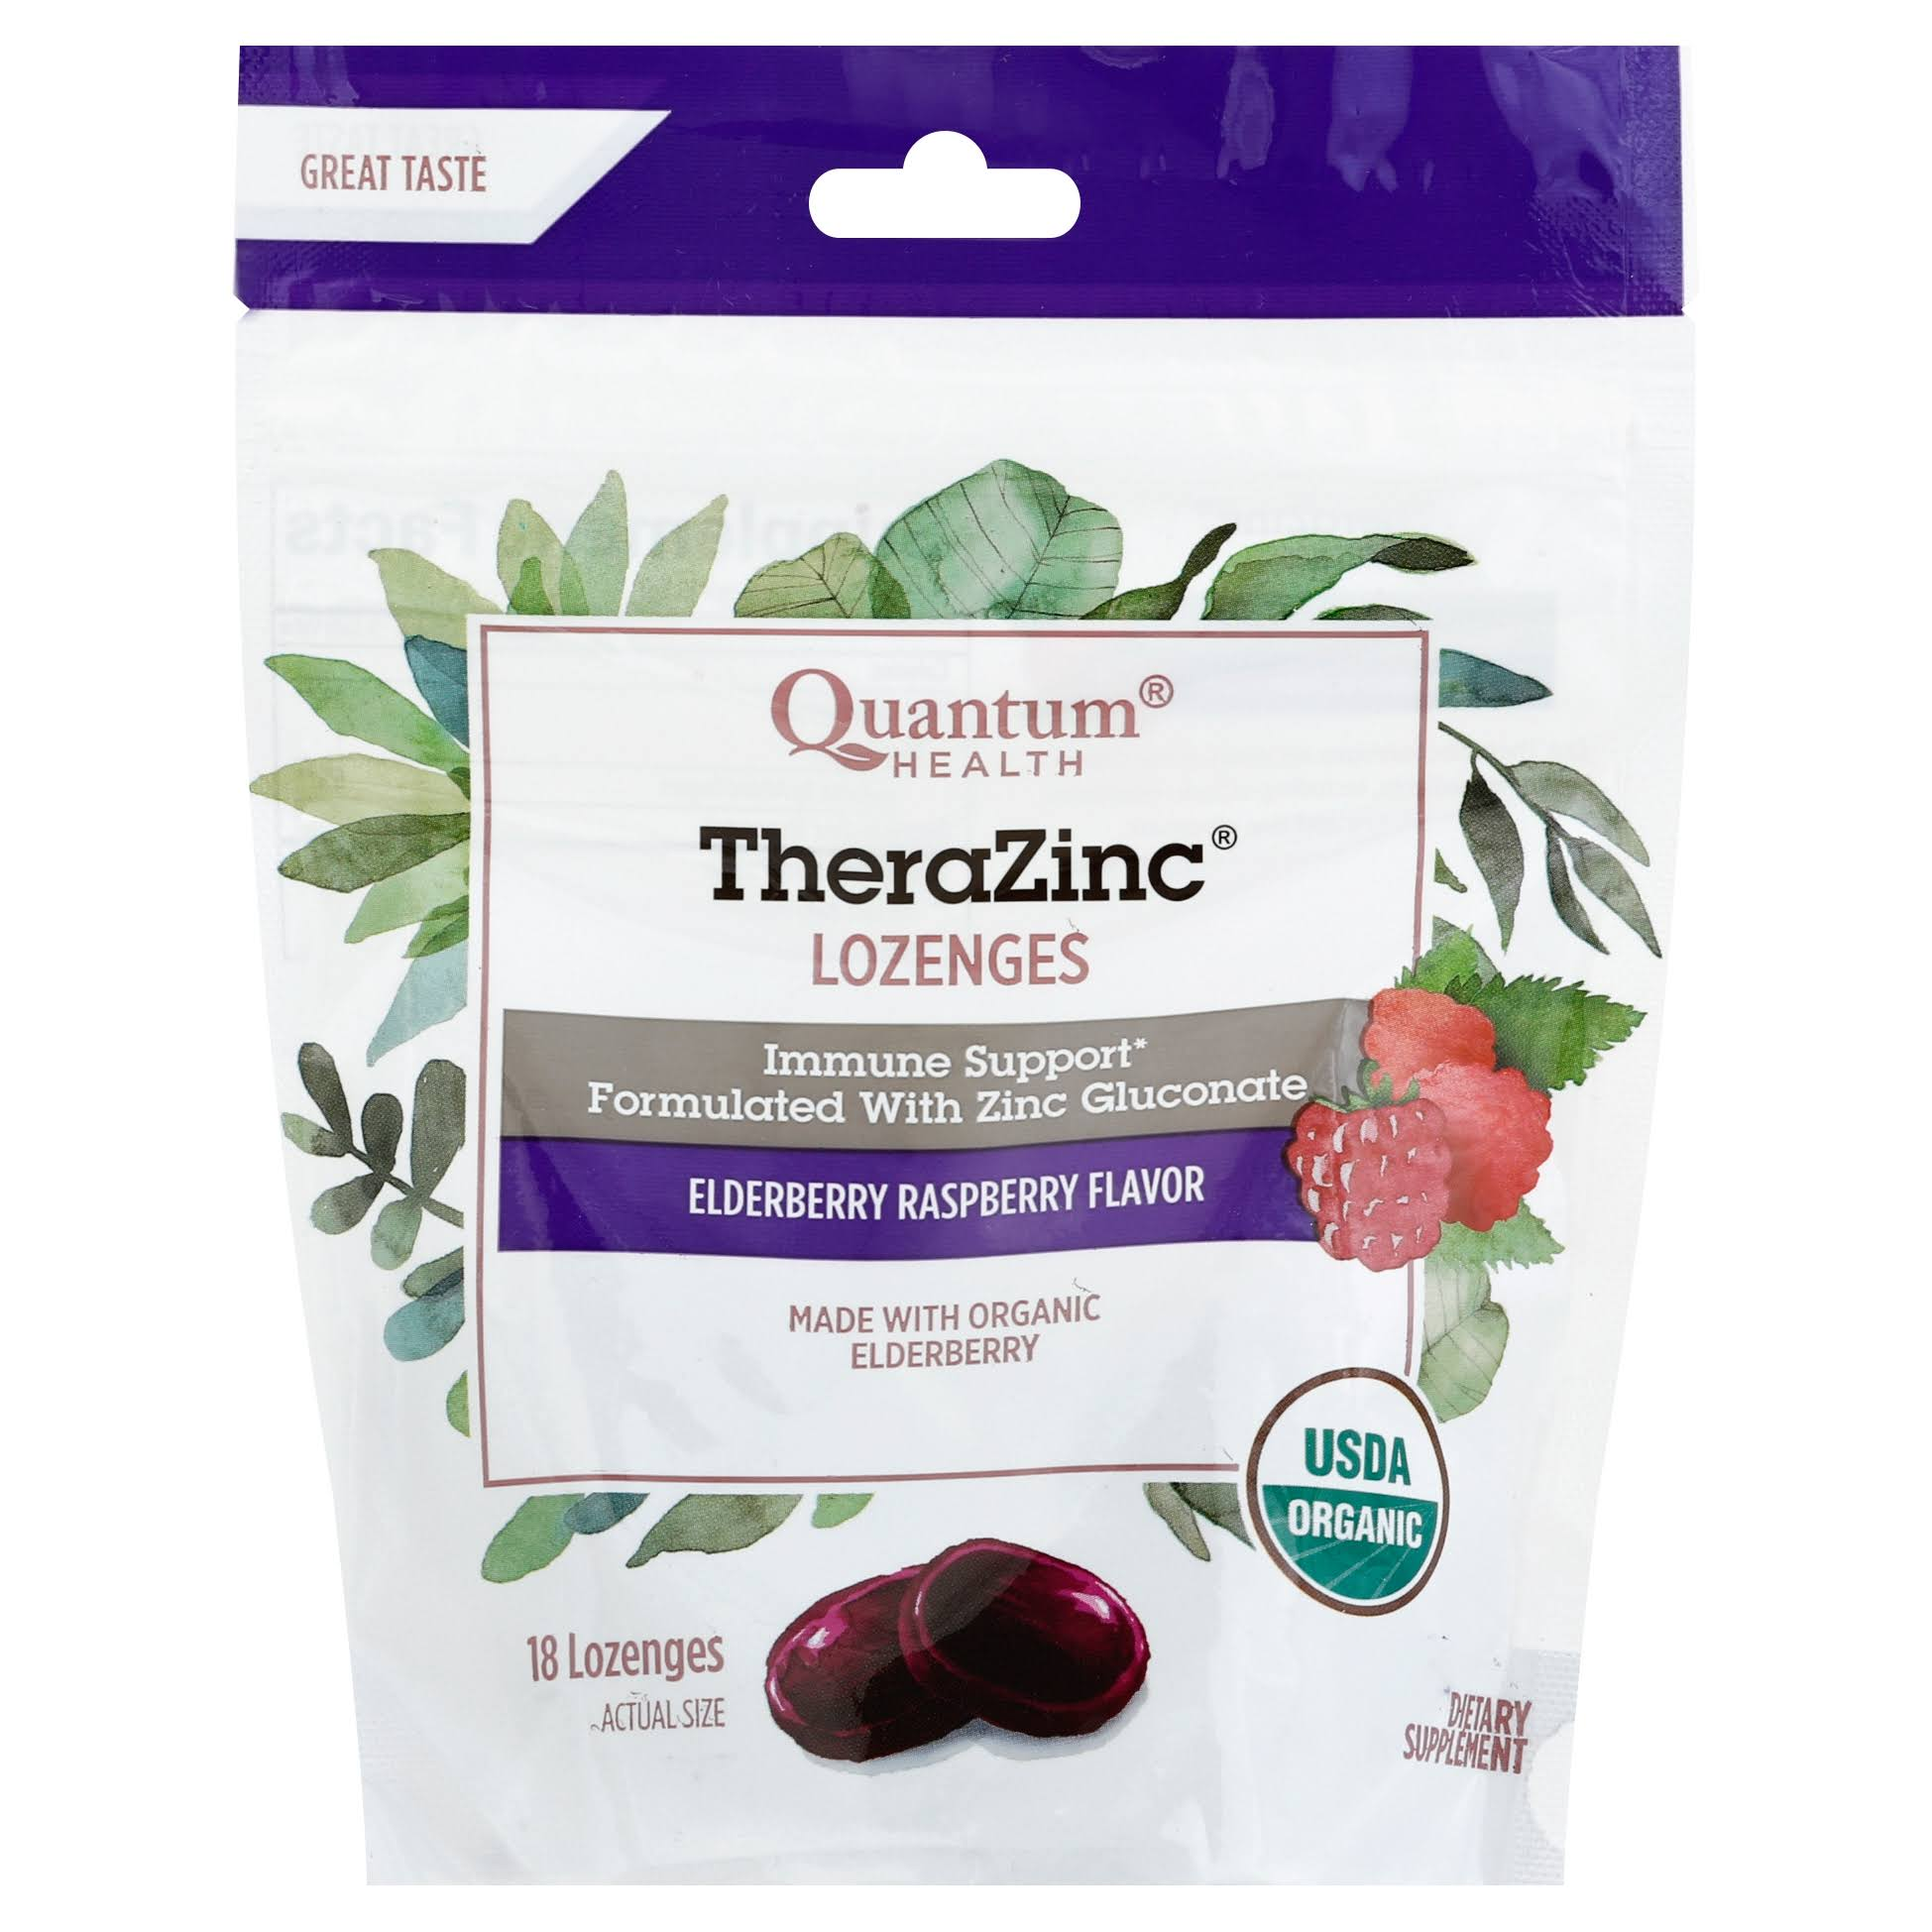 Quantum Thera Zinc Lozenges - Elderberry Raspberry Flavored, 18ct